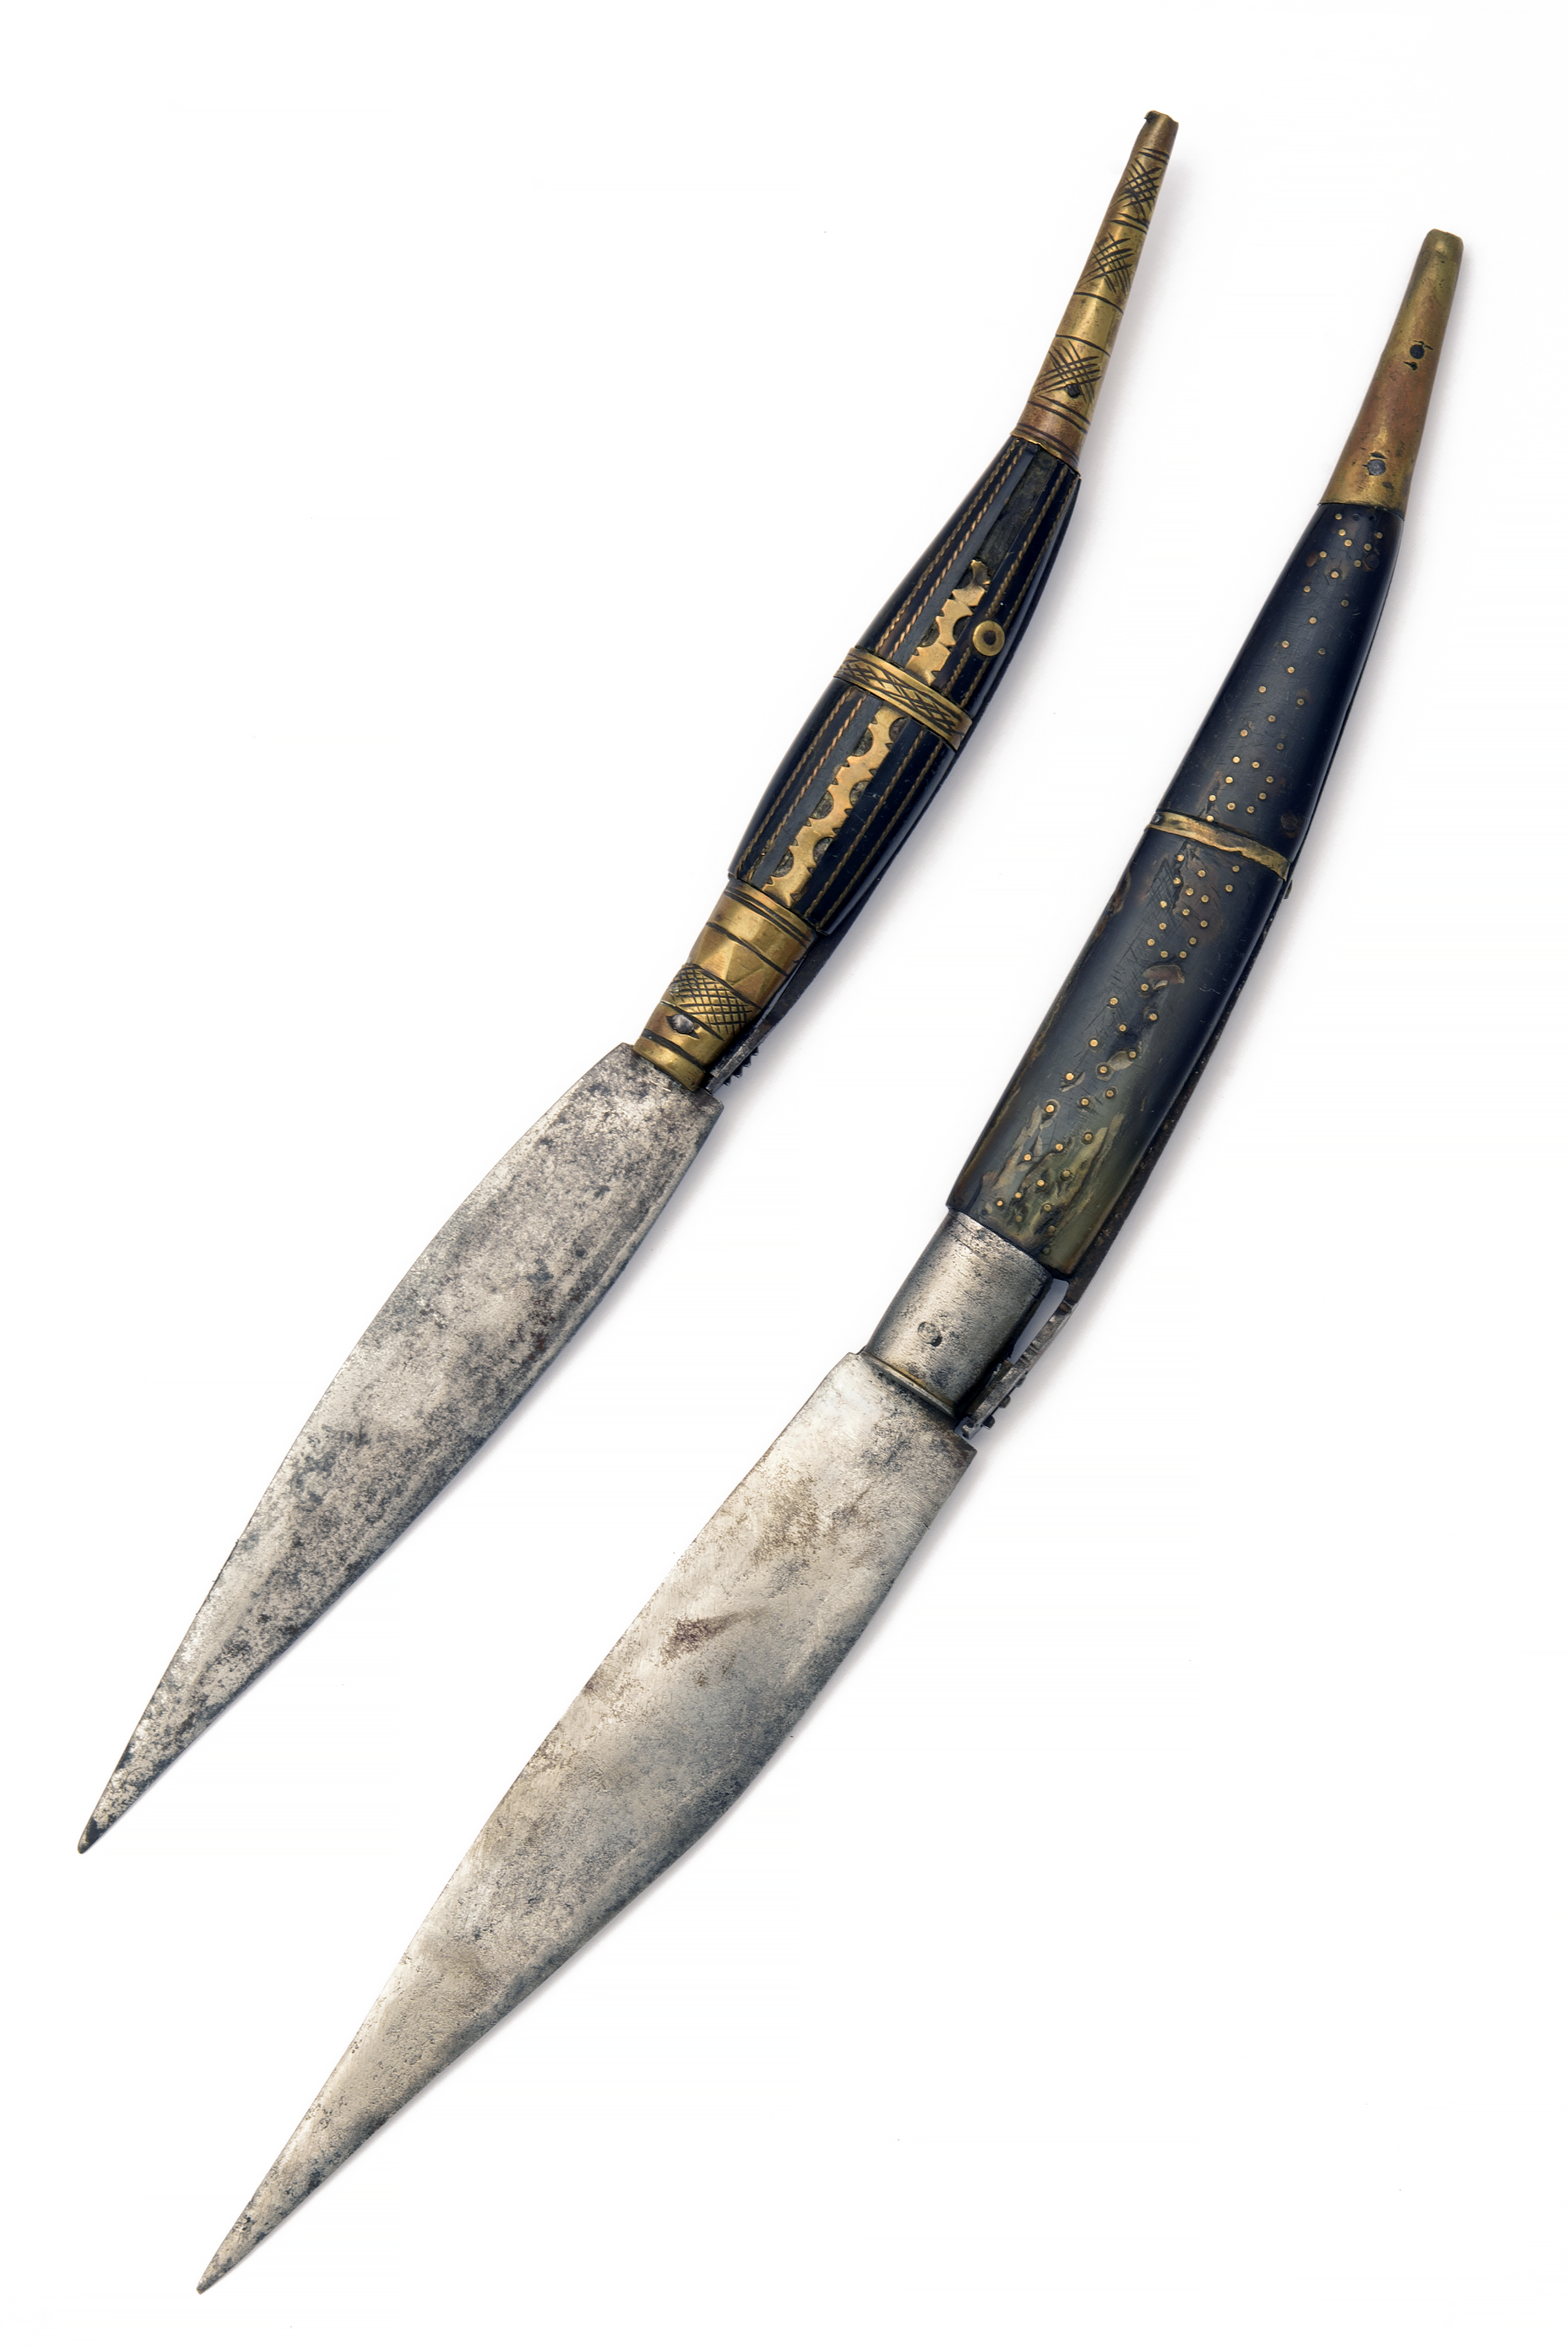 TWO SPANISH NAVAJA FOLDING KNIVES, late 19th century, the largest 16 3/4in. extended, both with horn